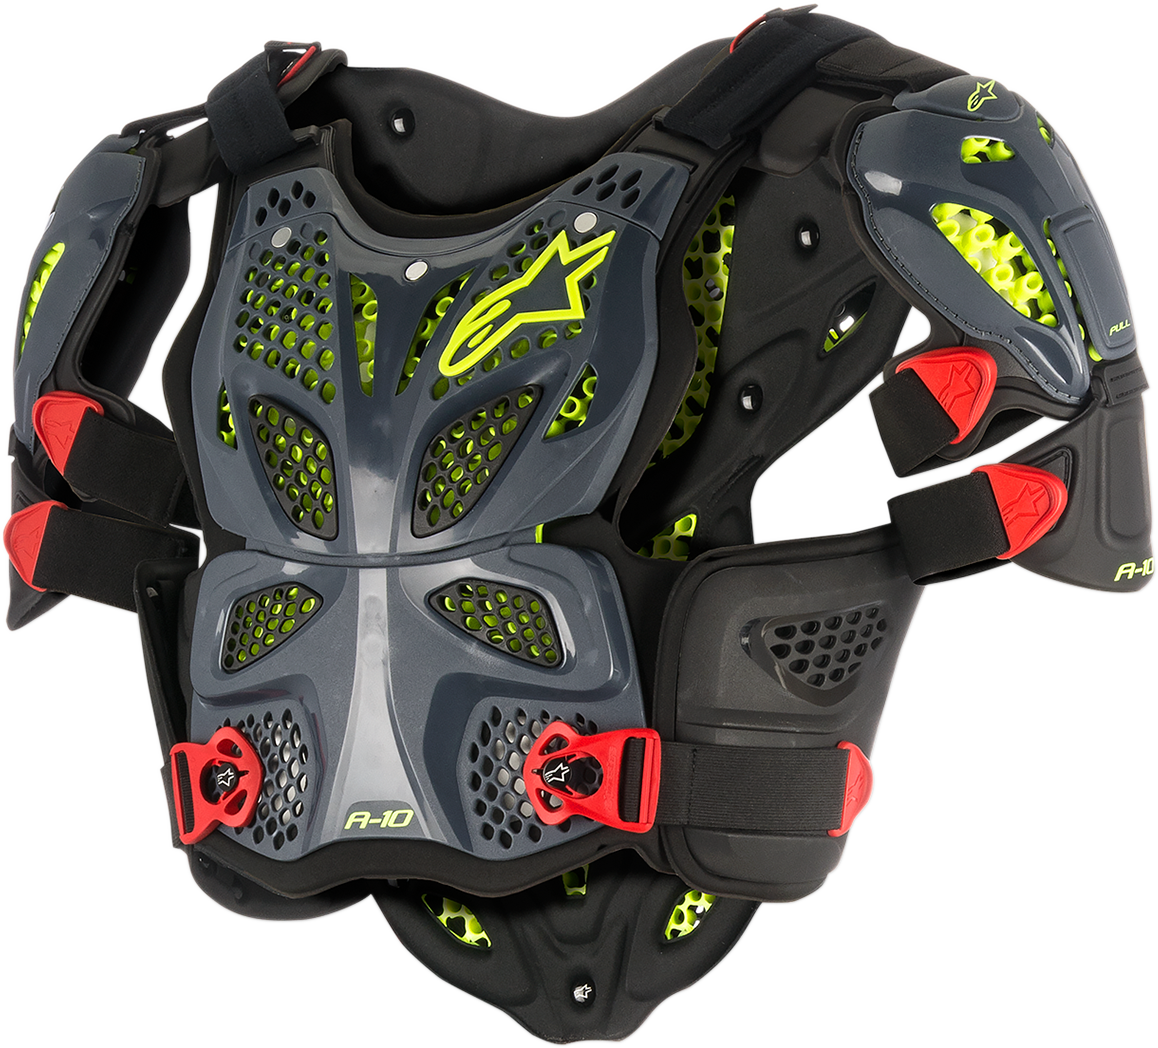 Alpinestars Unisex Textile A10 Off road Riding Dirt Bike Racing Root Deflector